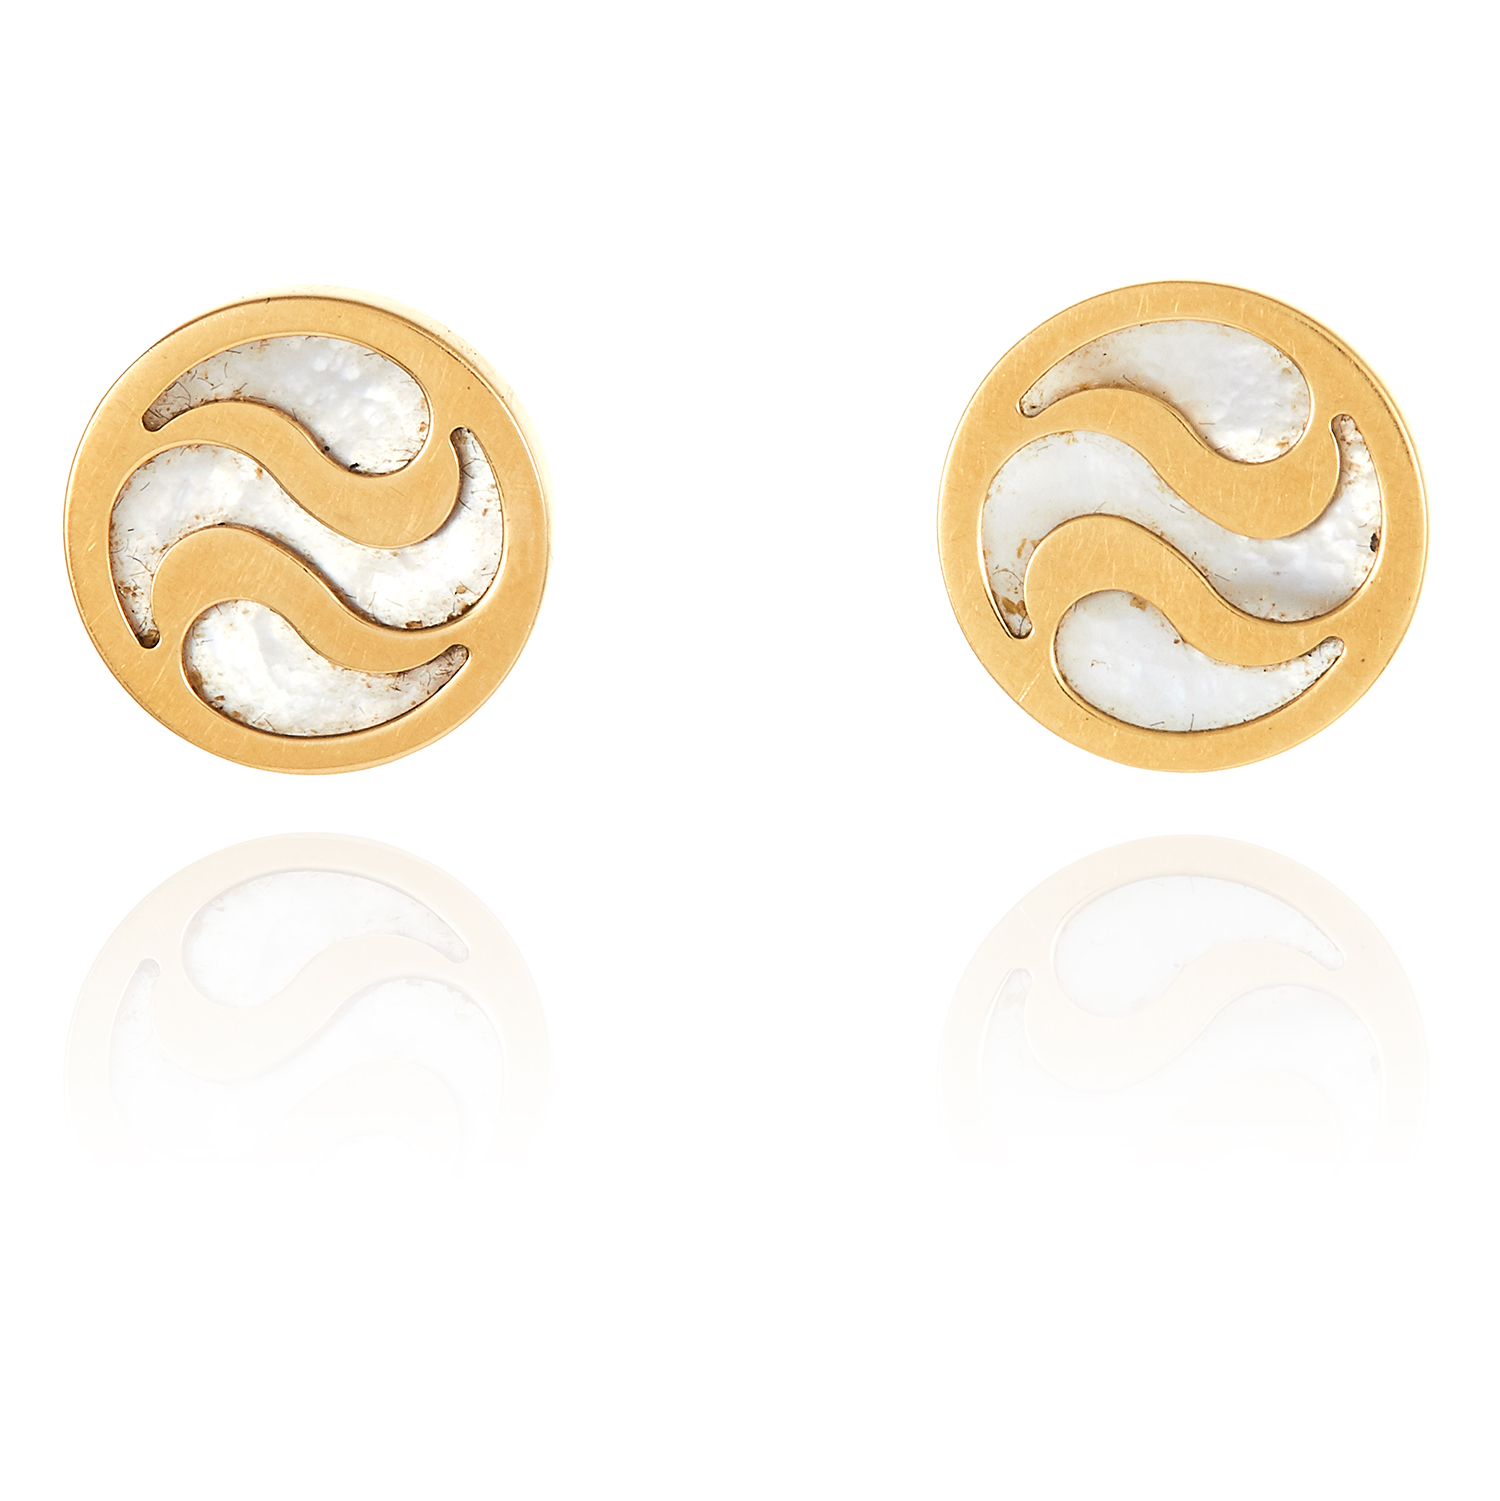 A PAIR OF MOTHER OF PEARL STUD EARRINGS, BVLGARI in 18ct yellow gold, jewelled with mother of